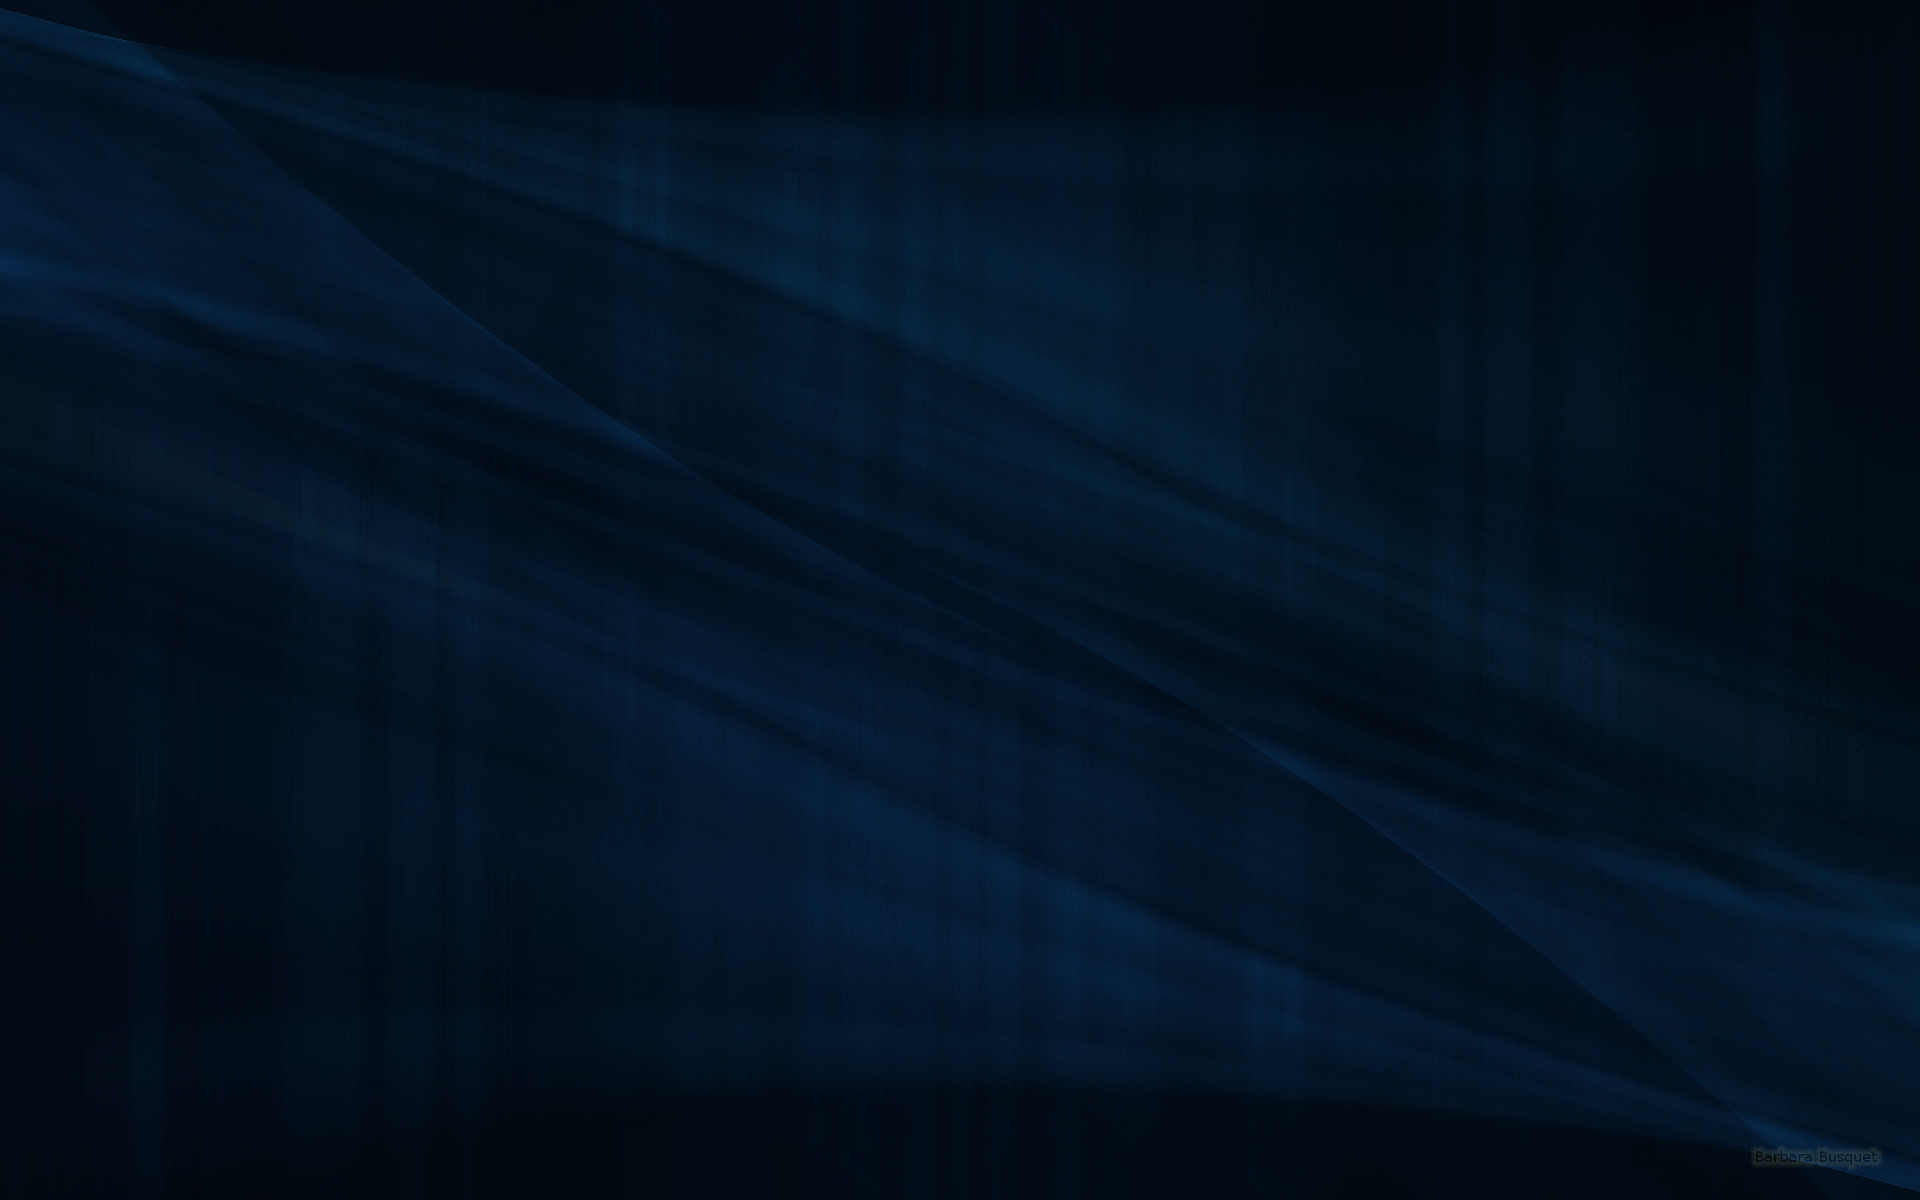 Dark blue vertical lines   Barbaras HD Wallpapers 1920x1200